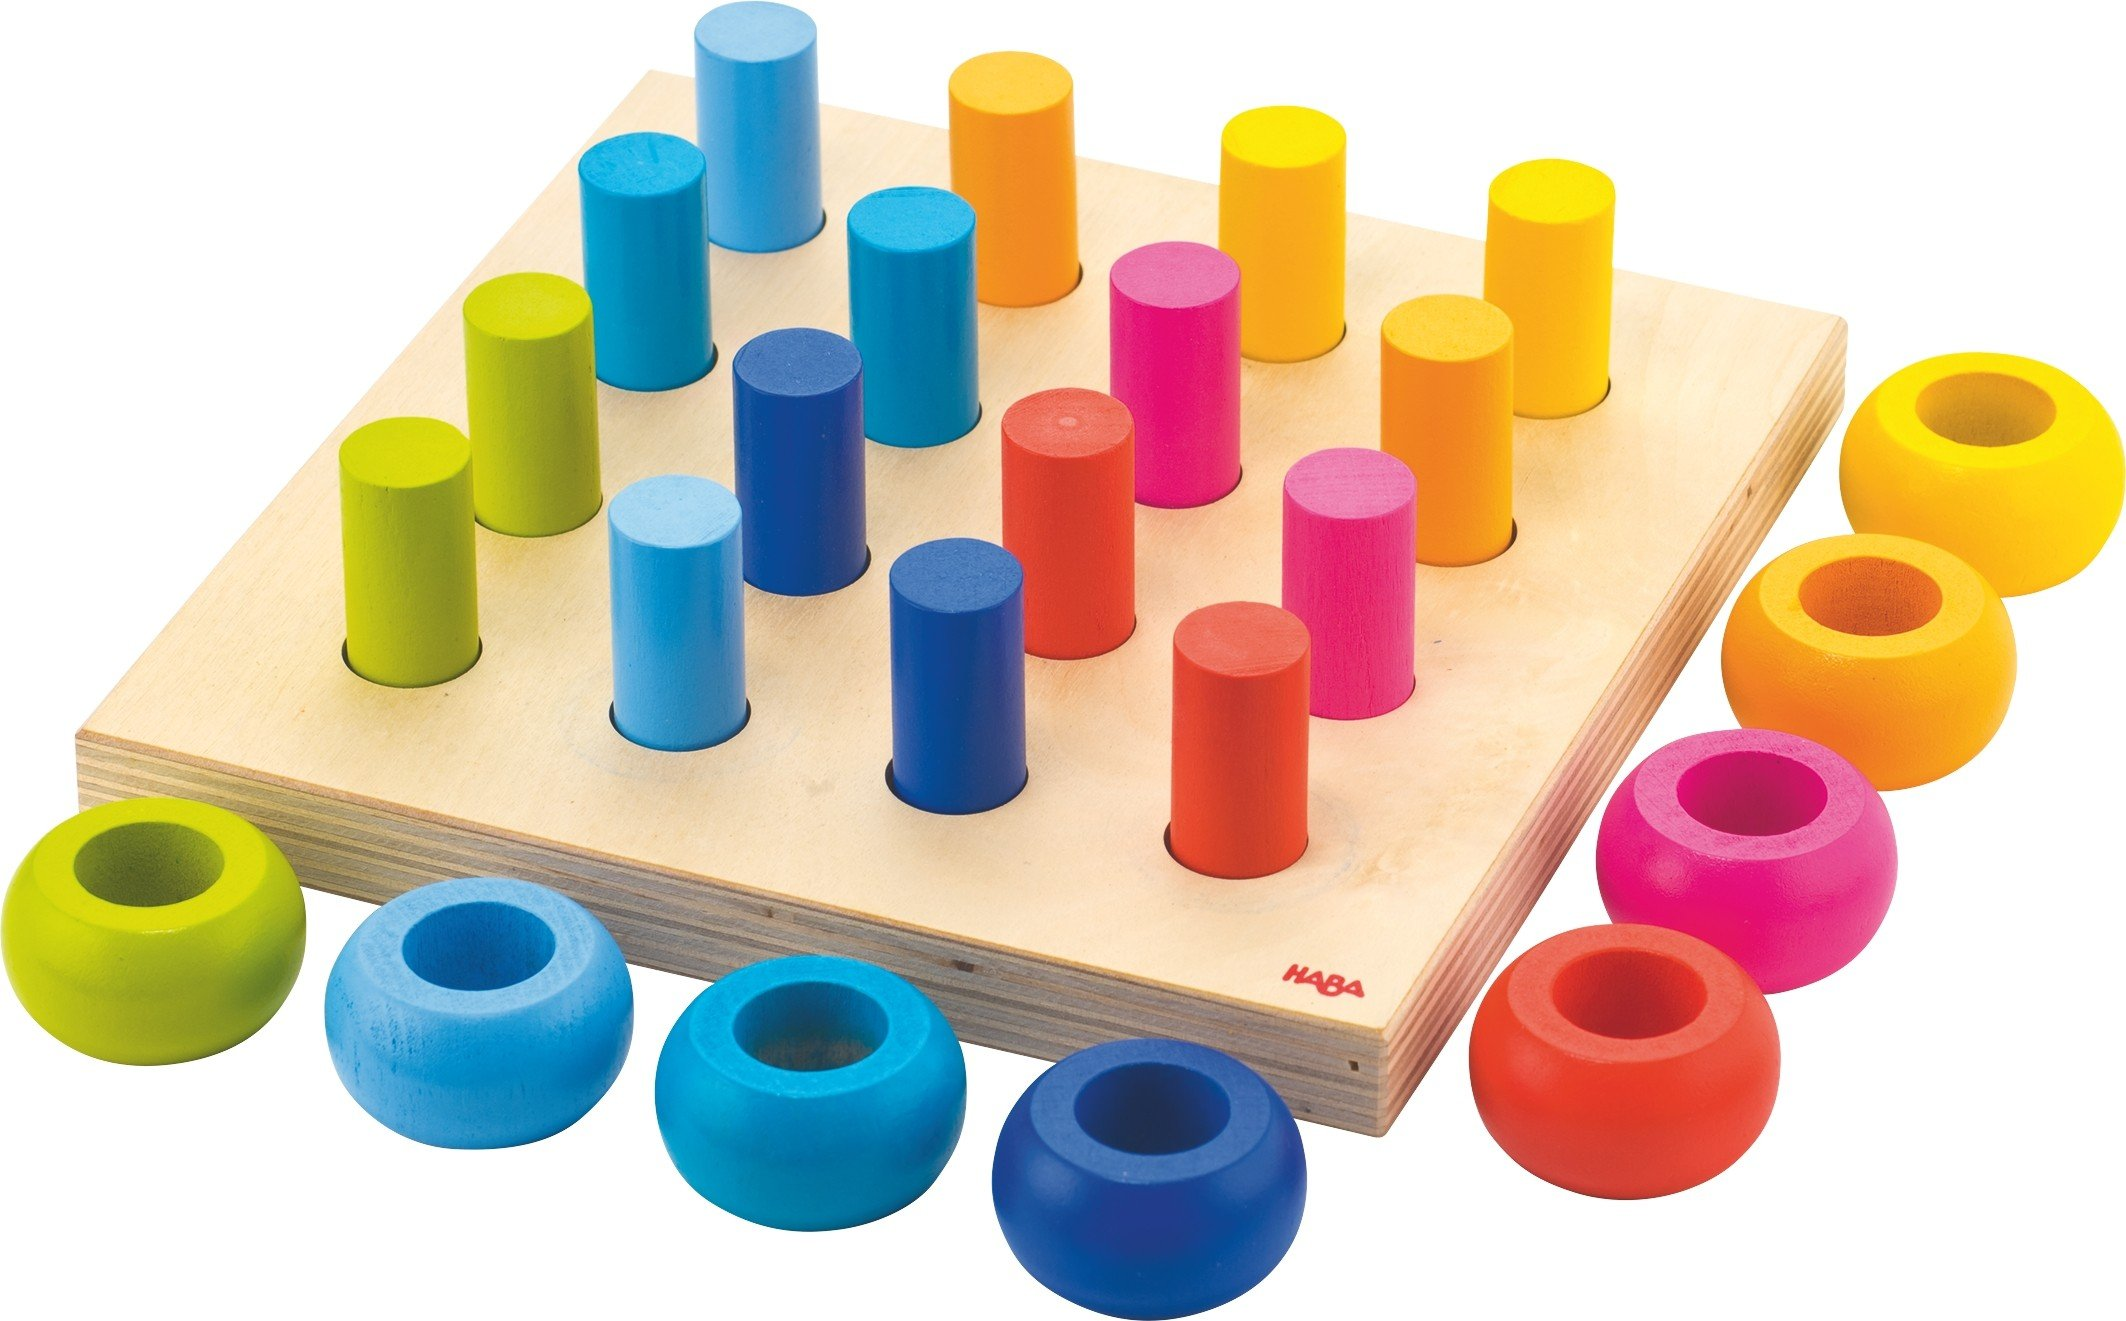 HABA Palette of Pegs - 32 Piece Wooden Pegging & Arranging Game for Ages 2 and Up by HABA